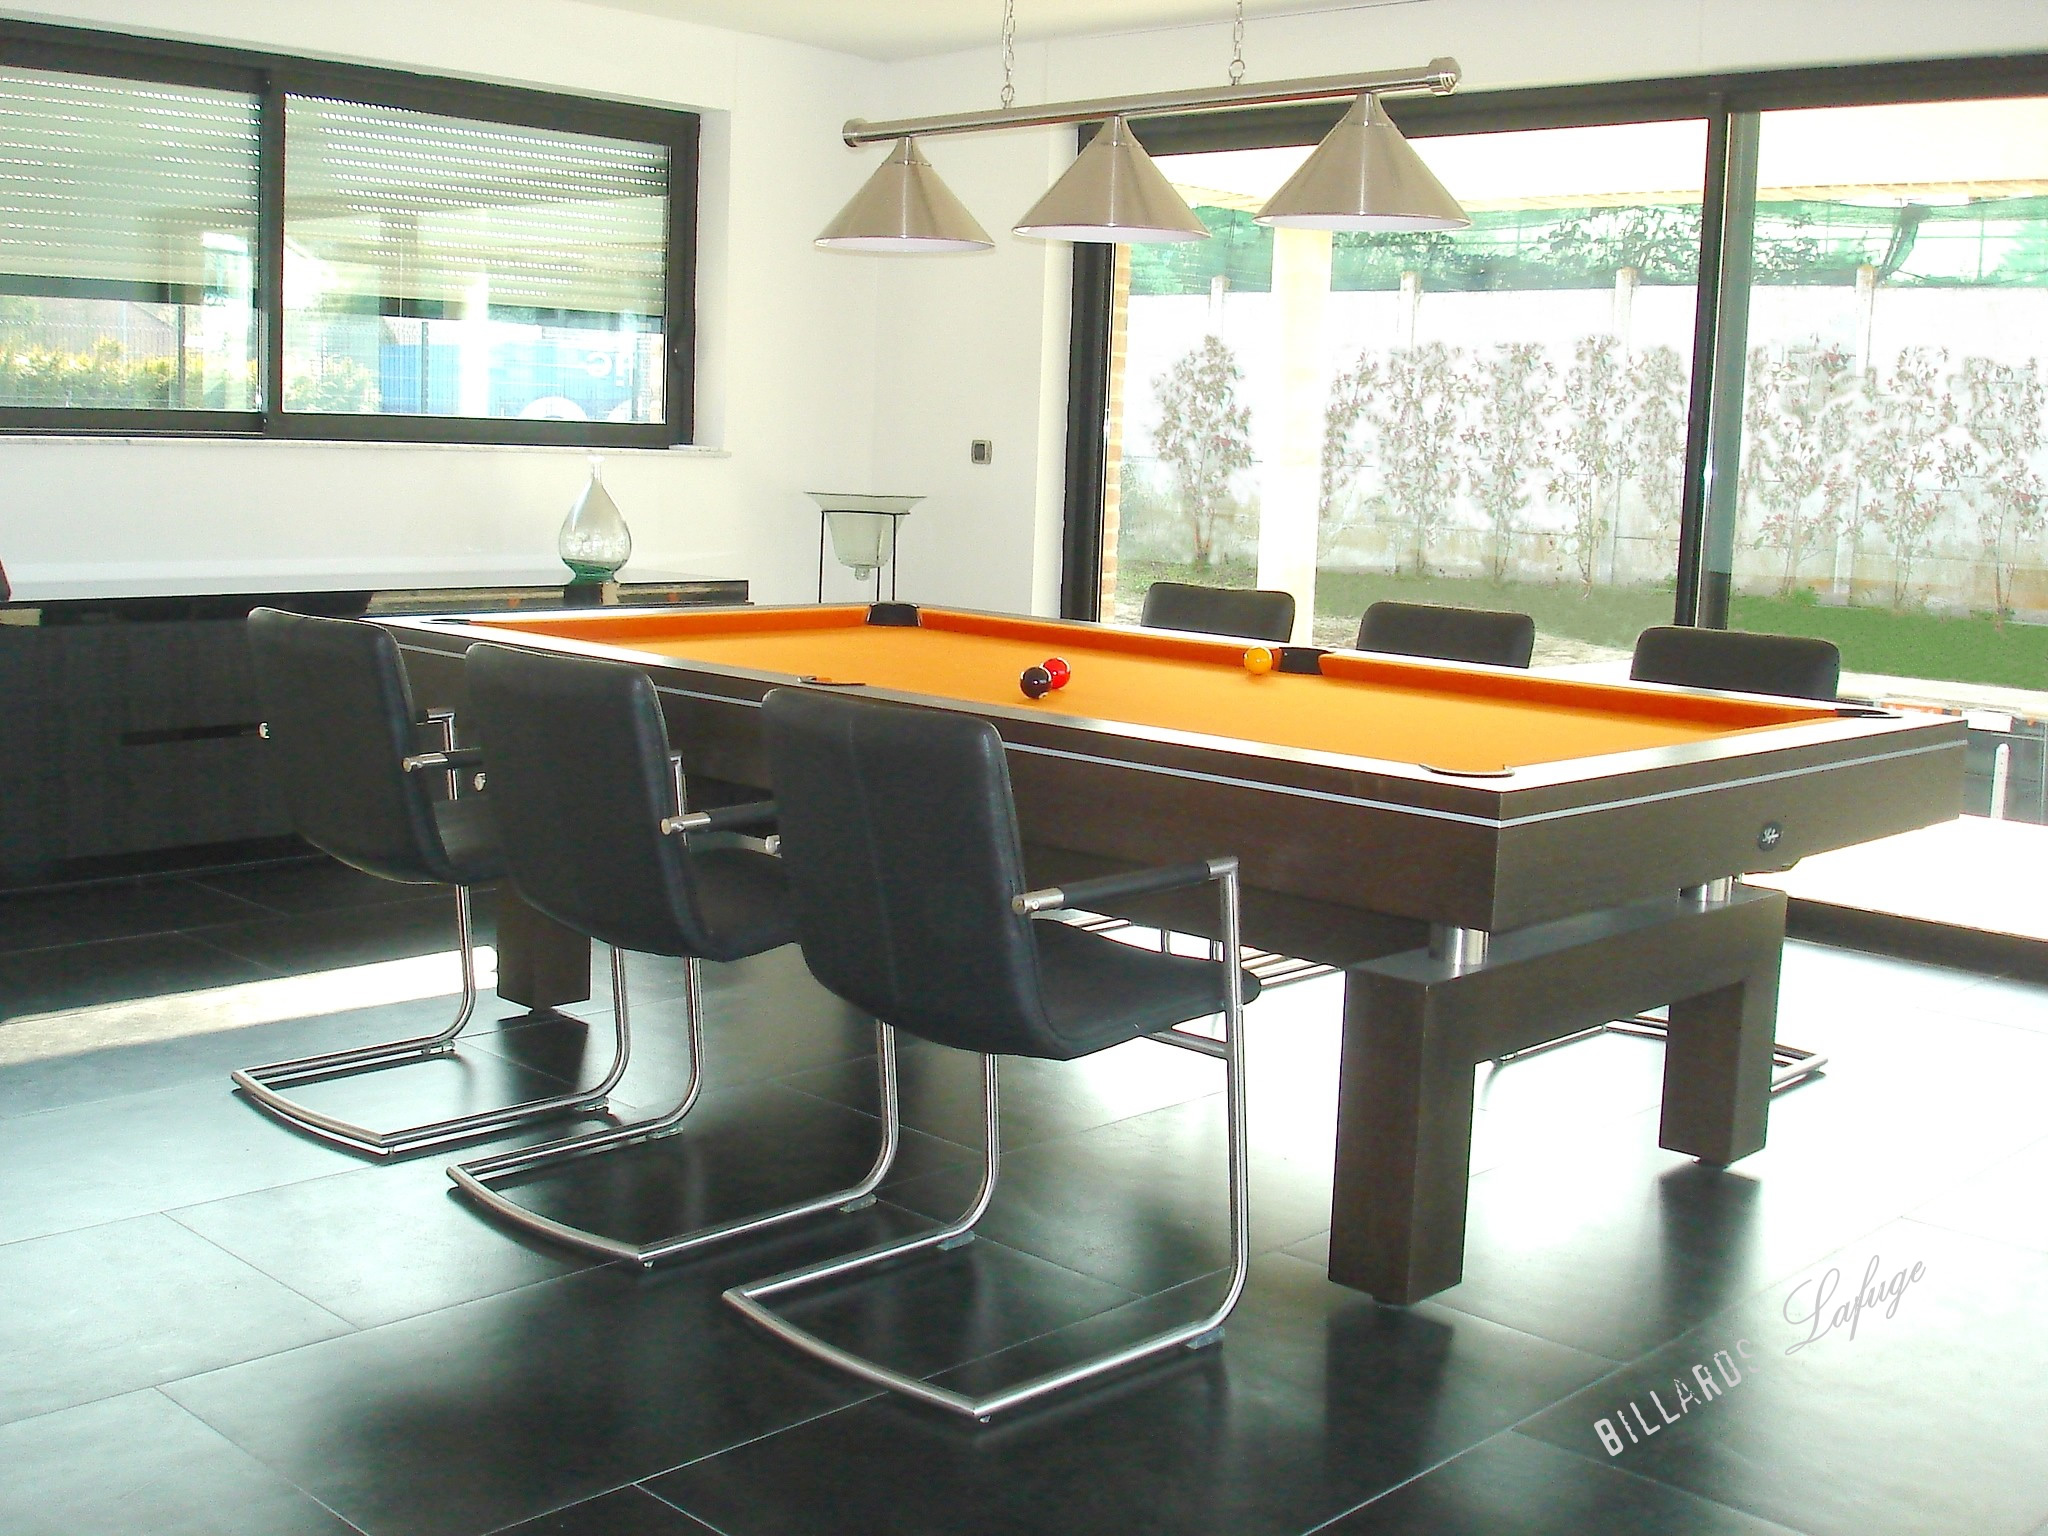 table de billard transformable table rabattable cuisine paris meuble blanc pas cher billard. Black Bedroom Furniture Sets. Home Design Ideas